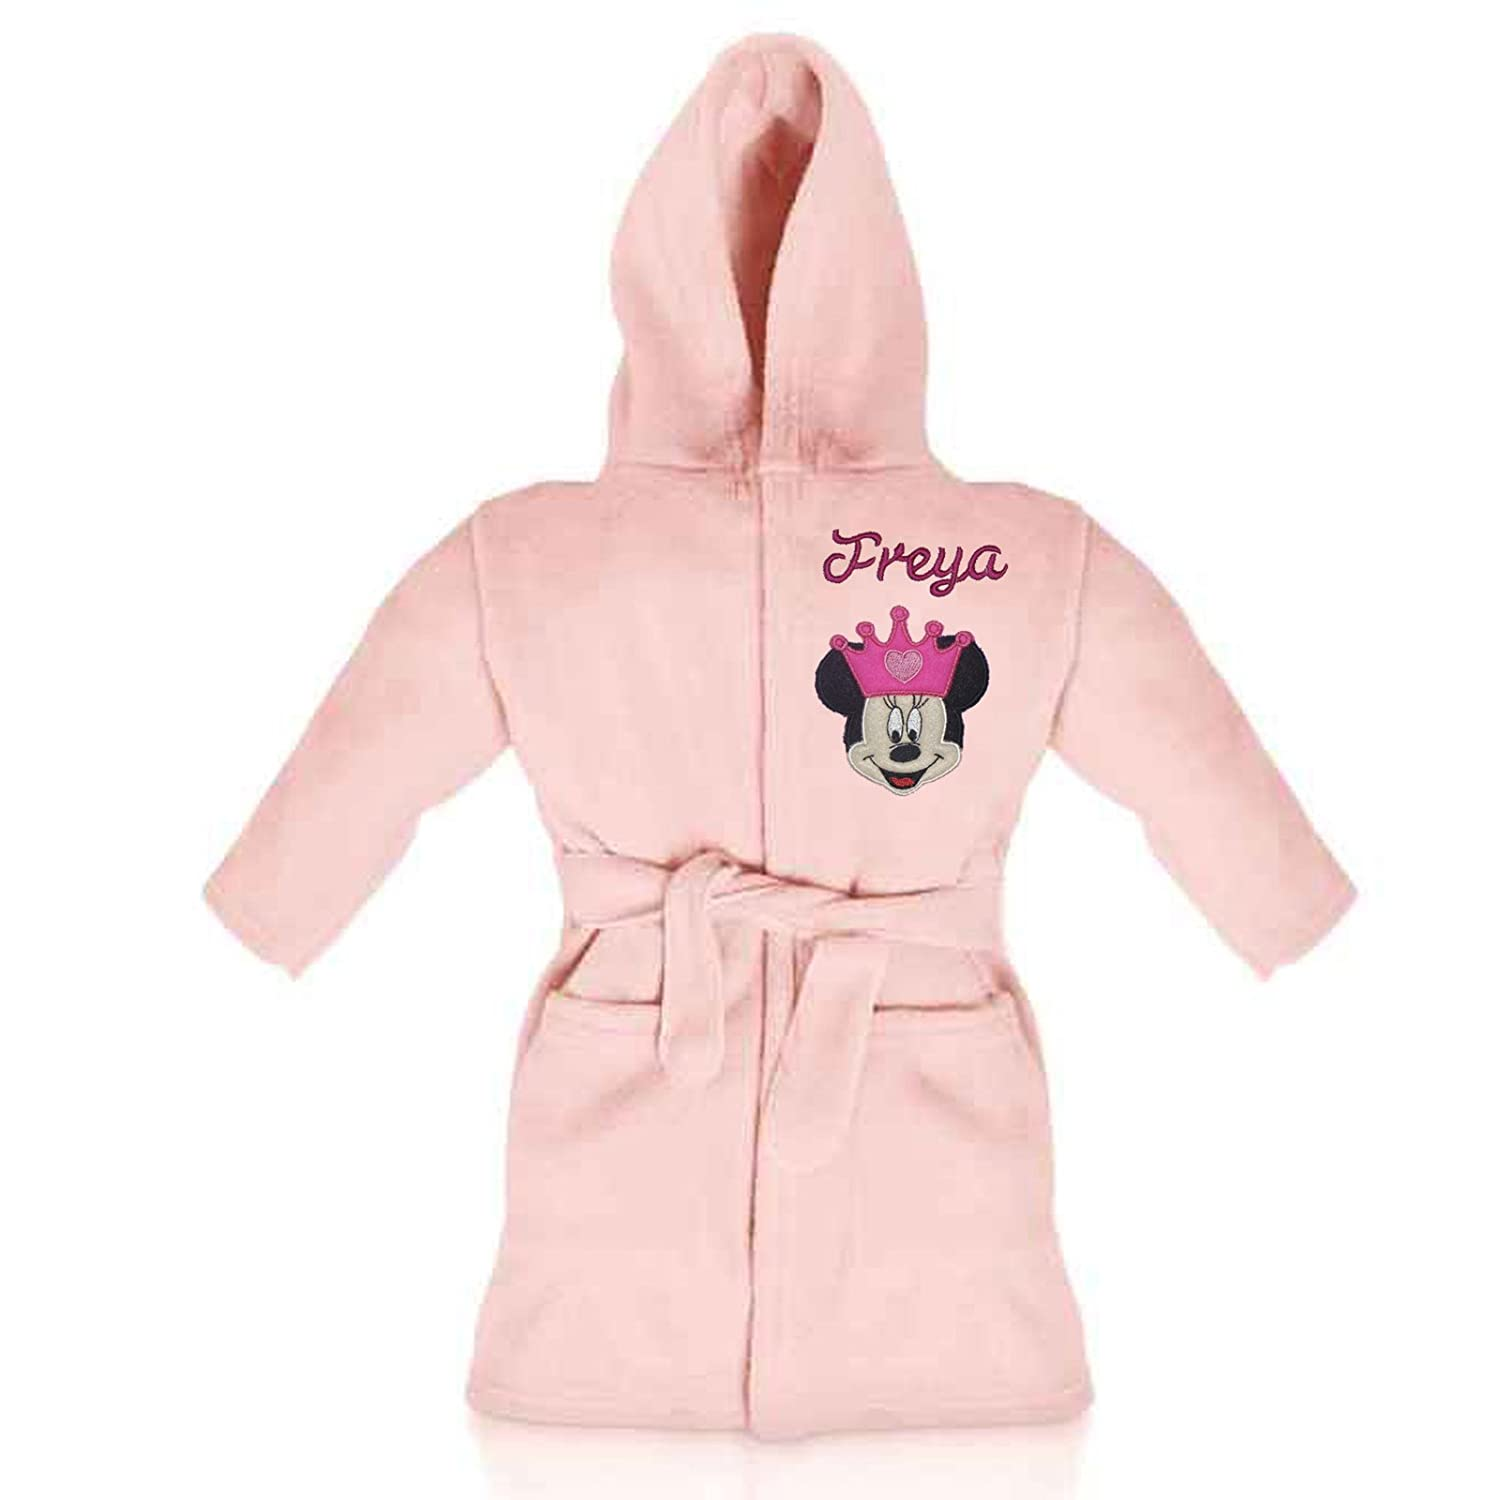 Minnie Mouse Princess Disney Luxury Personalised & Applique Super Soft Fleece Dressing Gown/Bathrobe (1-2 Years)